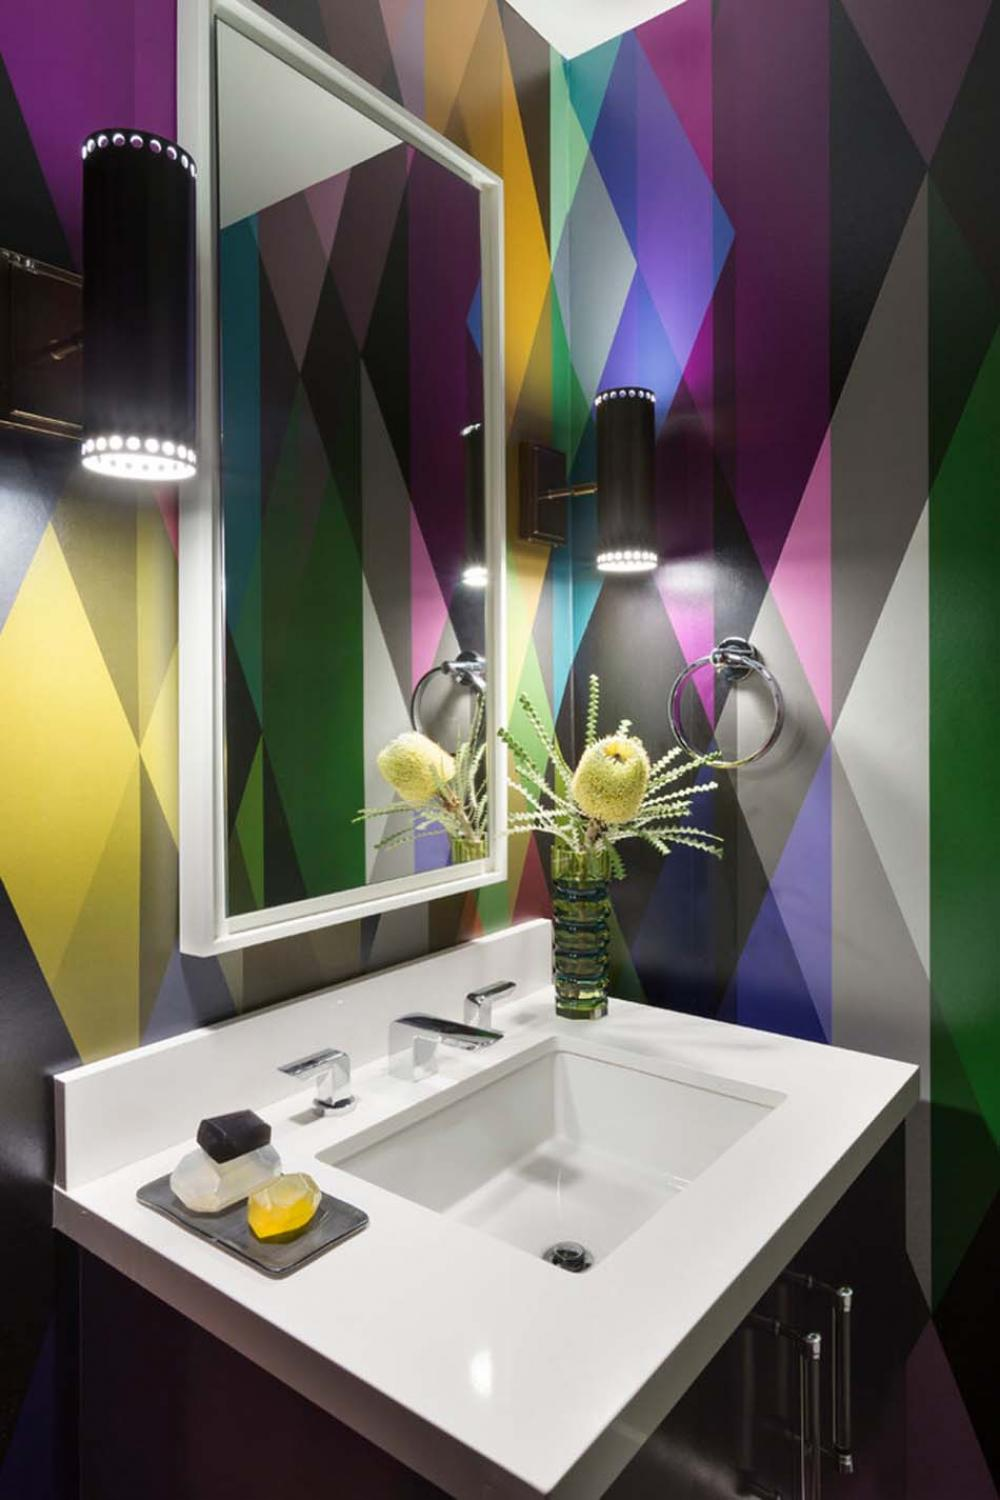 Wc Design Deco. Free Wc Design Deco With Wc Design Deco. Latest ...